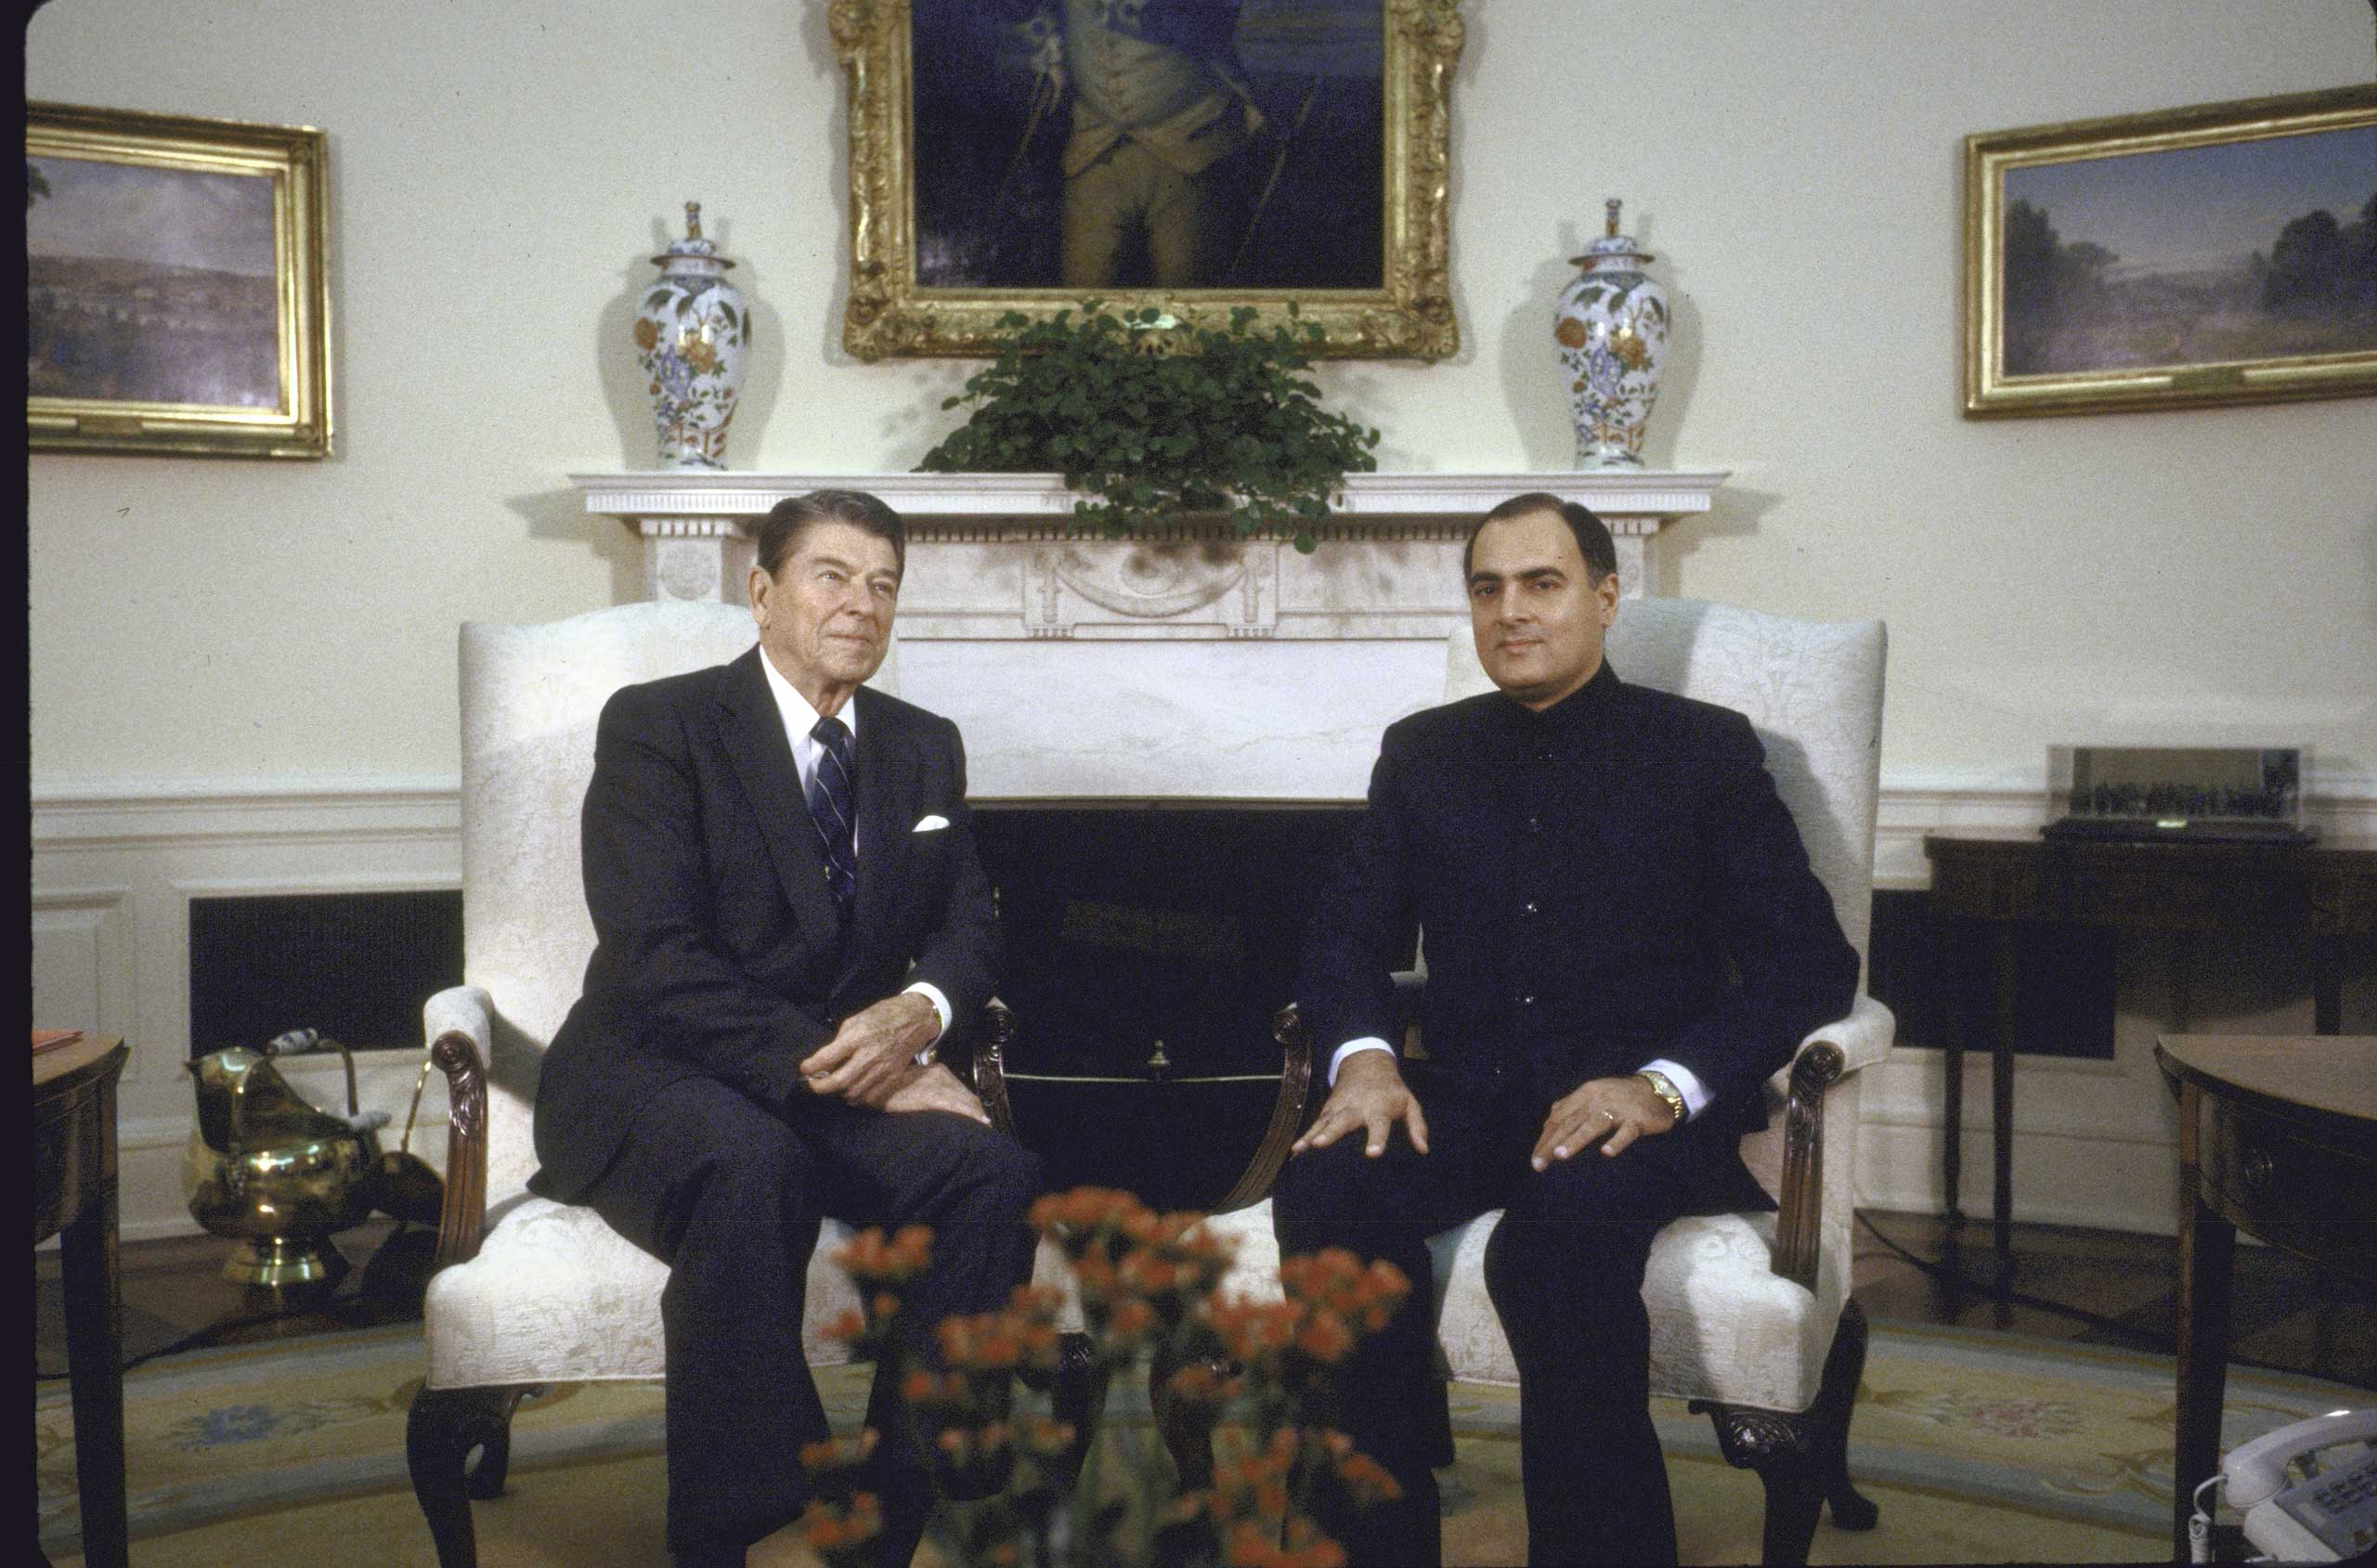 <b>1987:</b> In the 1980s, the Reagan Administration began to provide limited aid to India and eventually defense technology such as combat aircraft and naval engines. President Ronald W. Reagan met with India's Prime Minister Rajiv Gandhi in Washington on Oct. 1 1987.